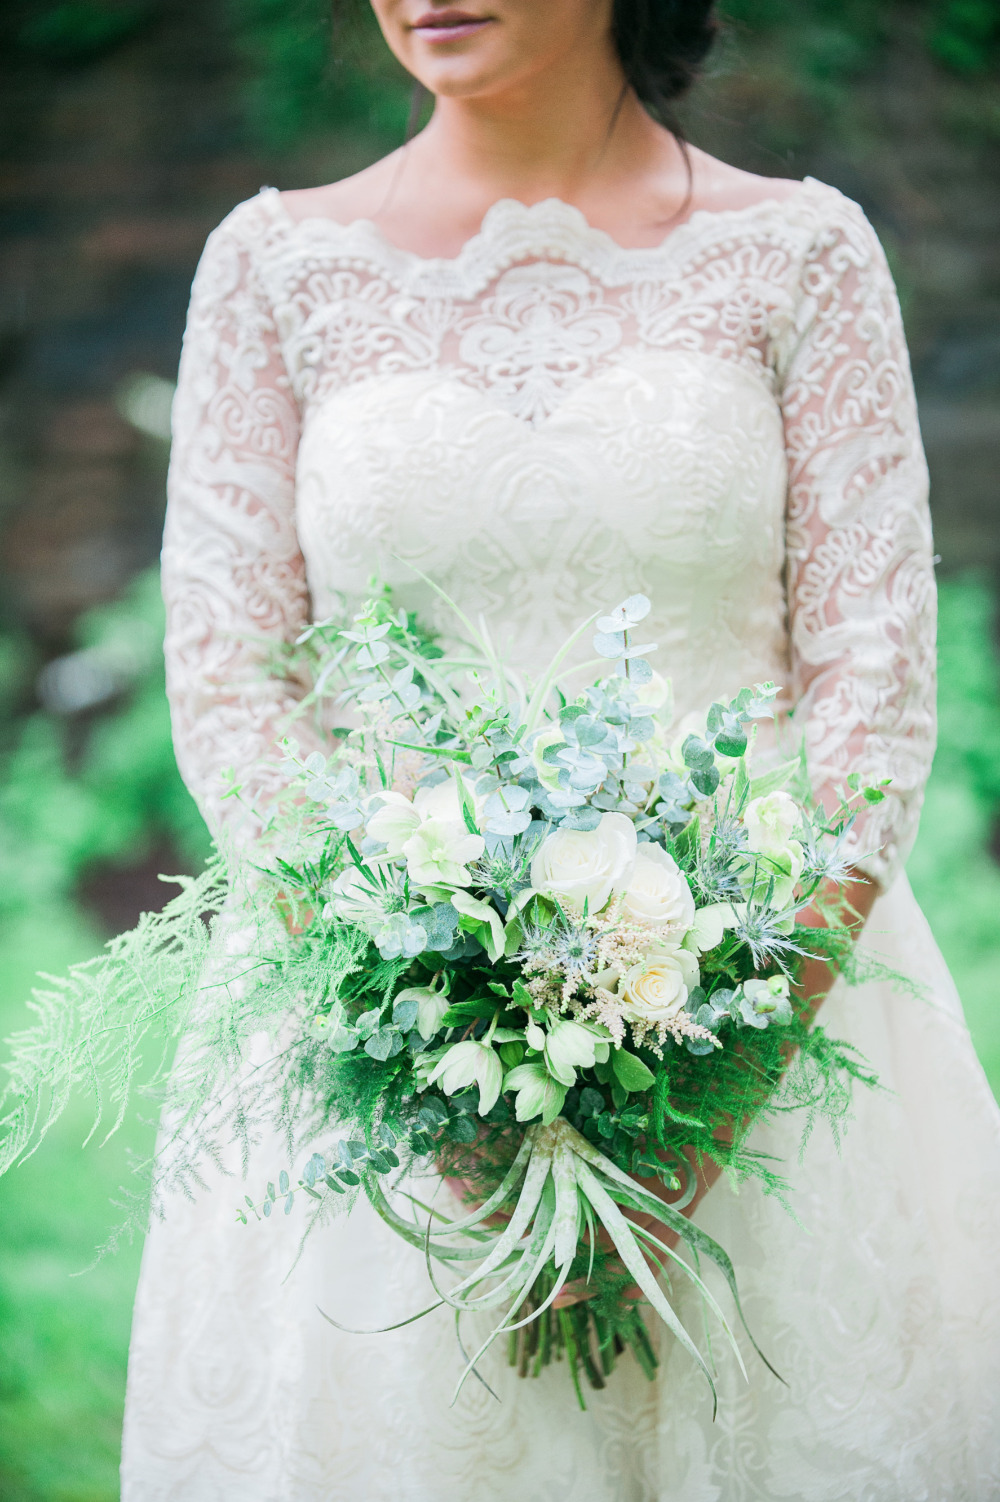 gorgoues lace wedding dress and white bouquet